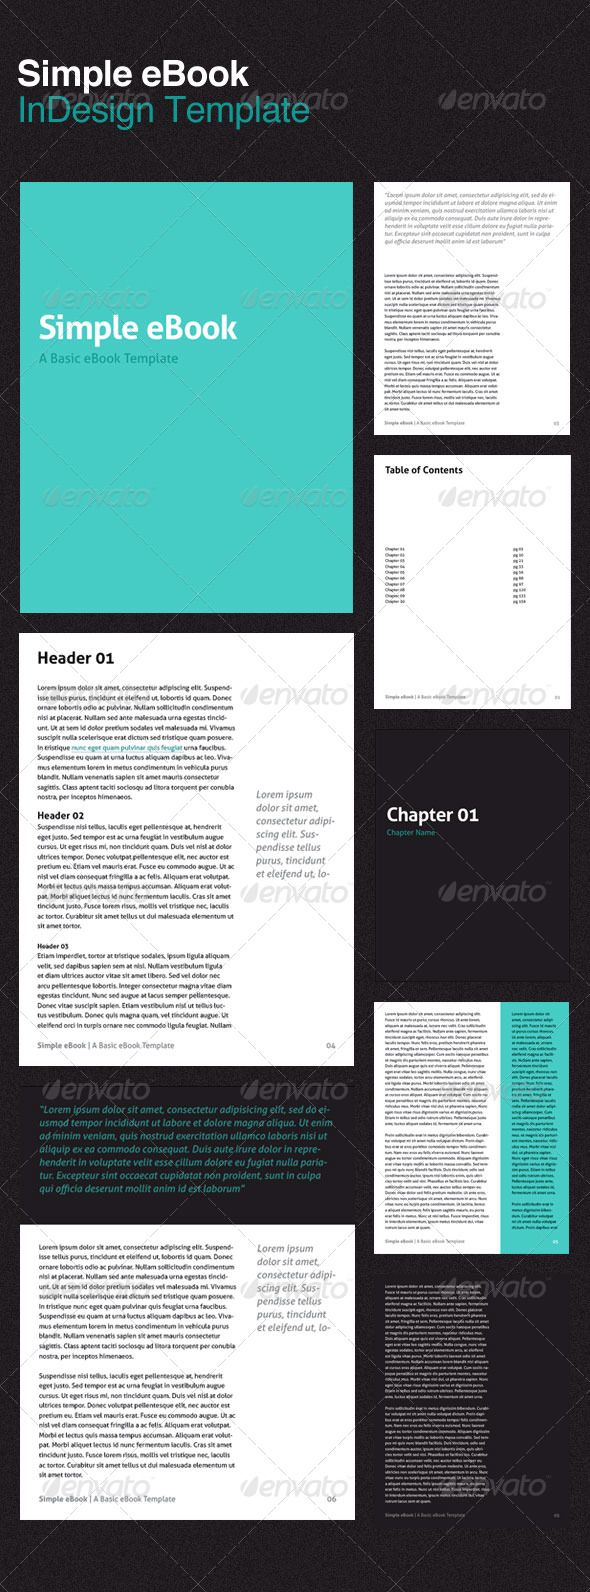 17 best images about print templates on pinterest sports for 8 5 x 11 brochure template indesign